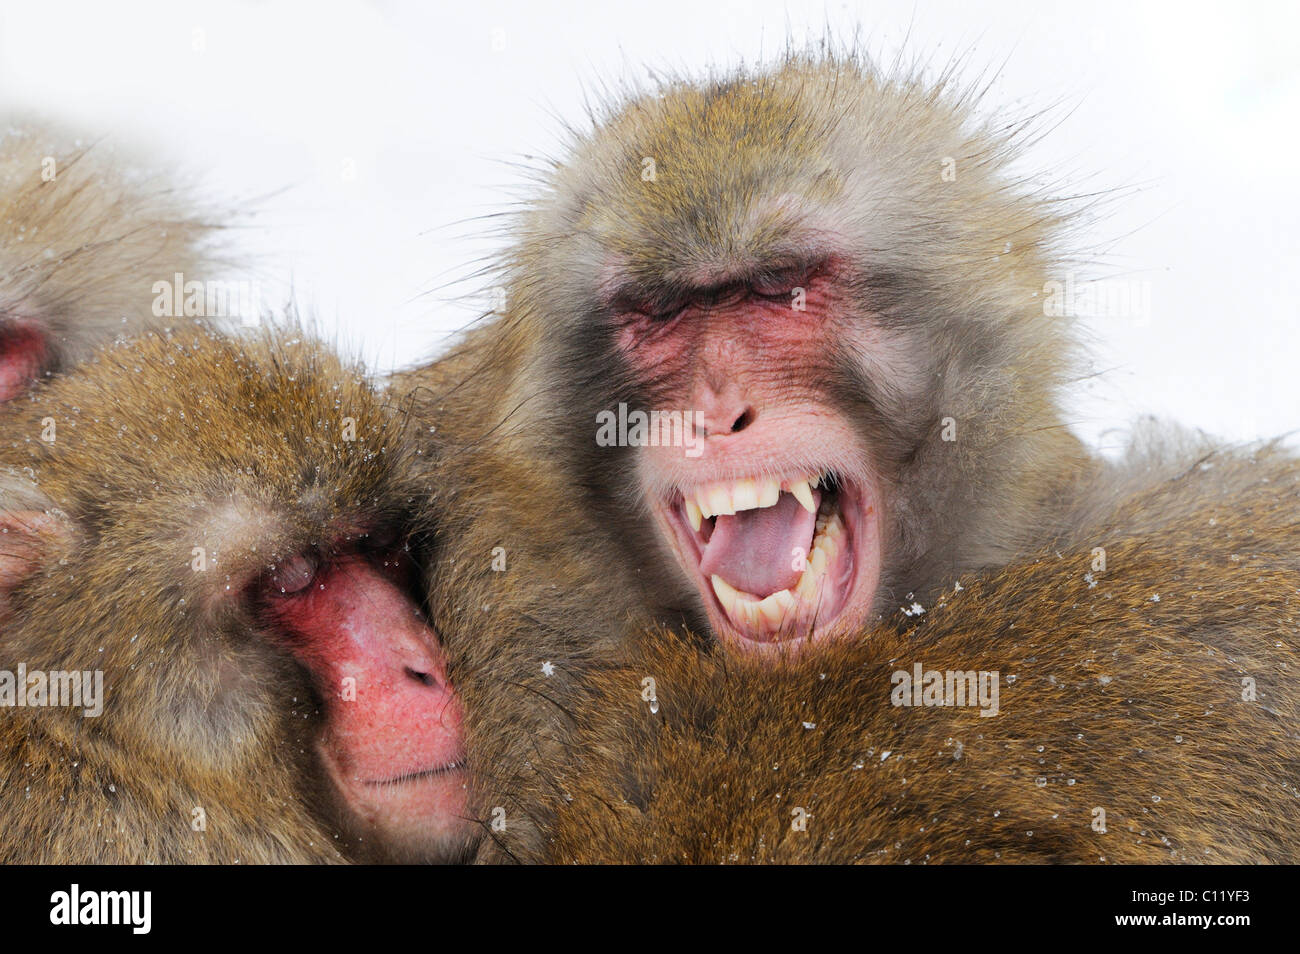 Japanese macaques (Macaca fuscata) - Stock Image